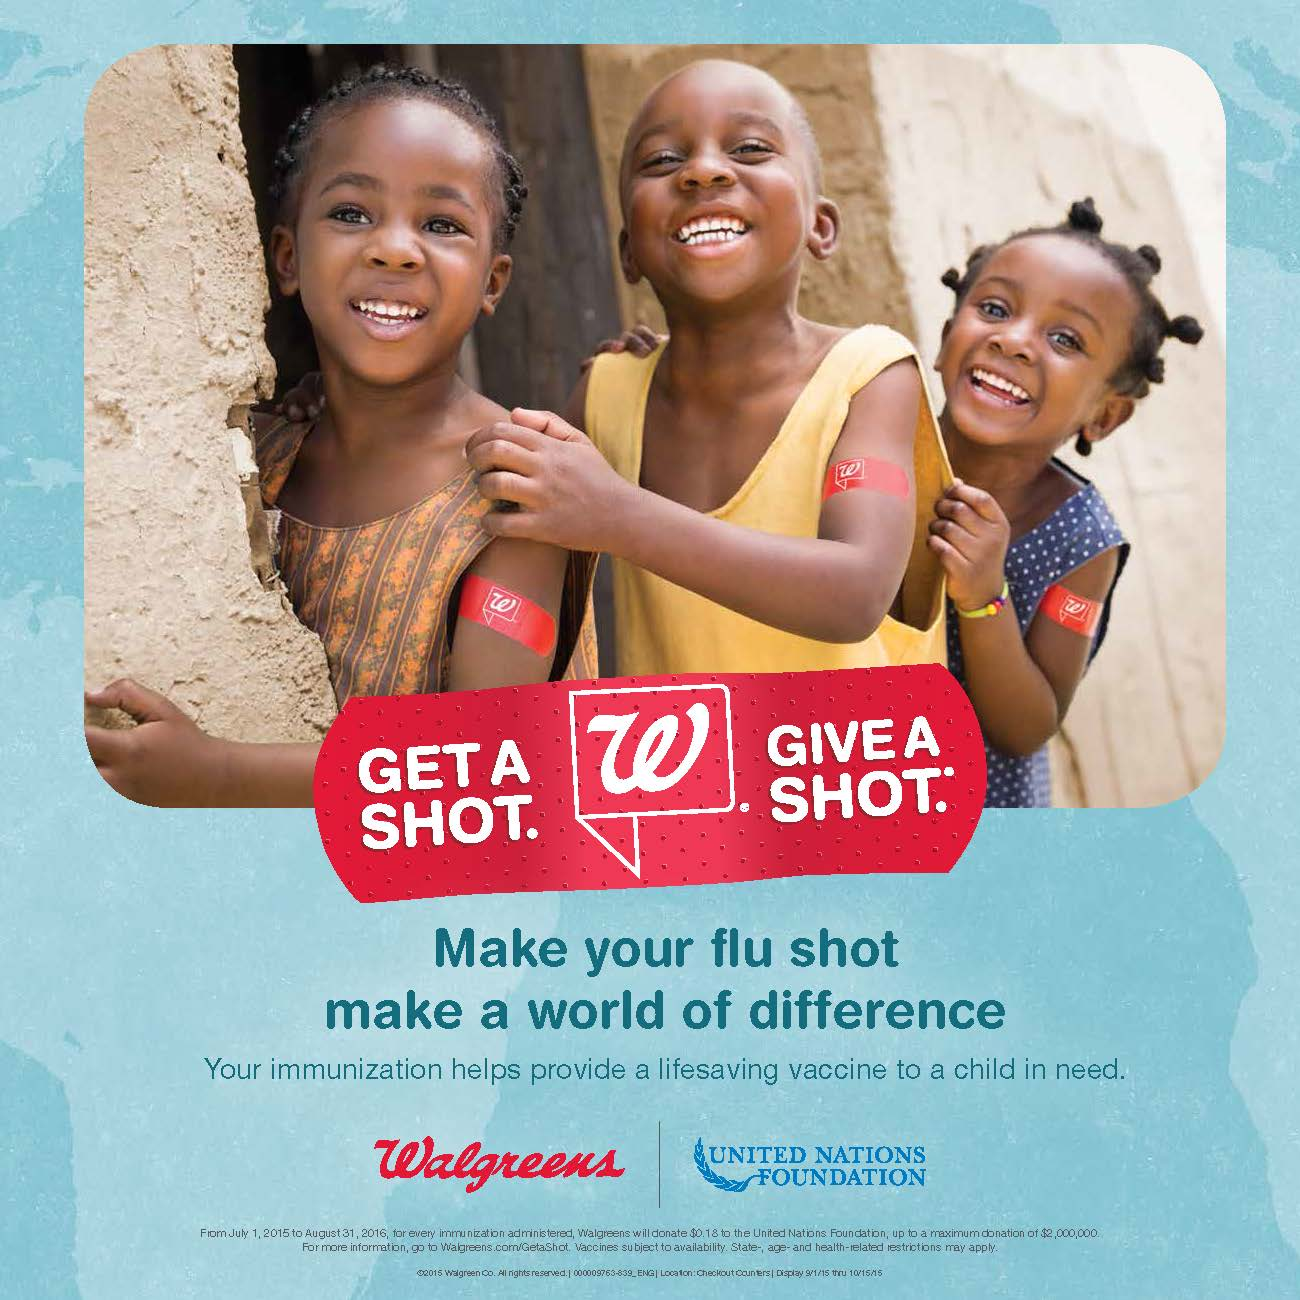 walgreens-get-a-shot-give-a-shot-1